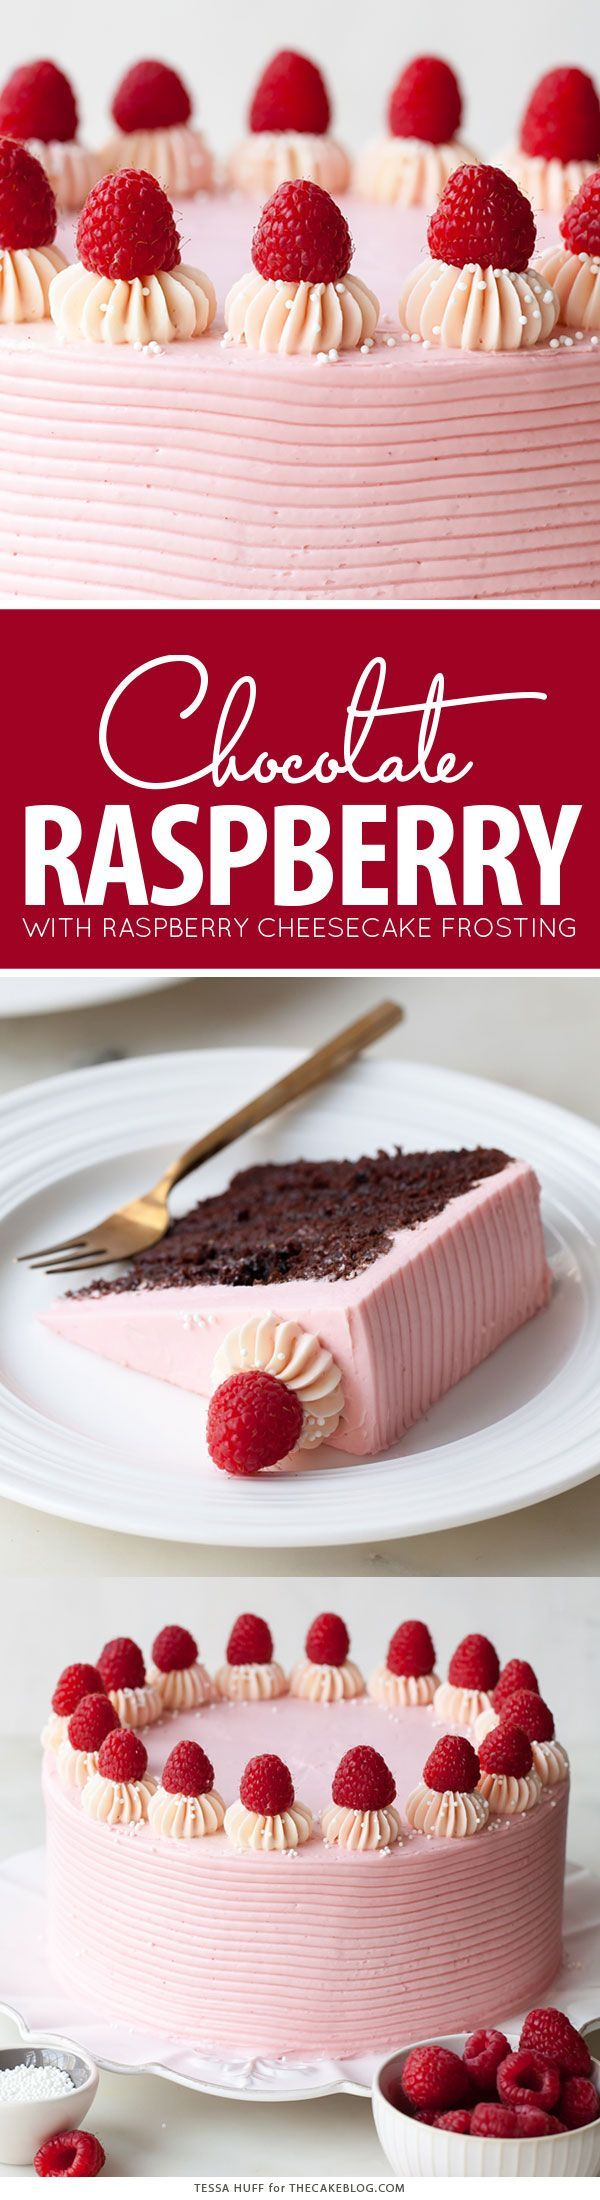 Chocolate Raspberry Cake - moist chocolate cake layered with raspberry jam, topped with raspberry cheesecake frosting and fresh red raspberries | by Tessa Huff for TheCakeBlog.com